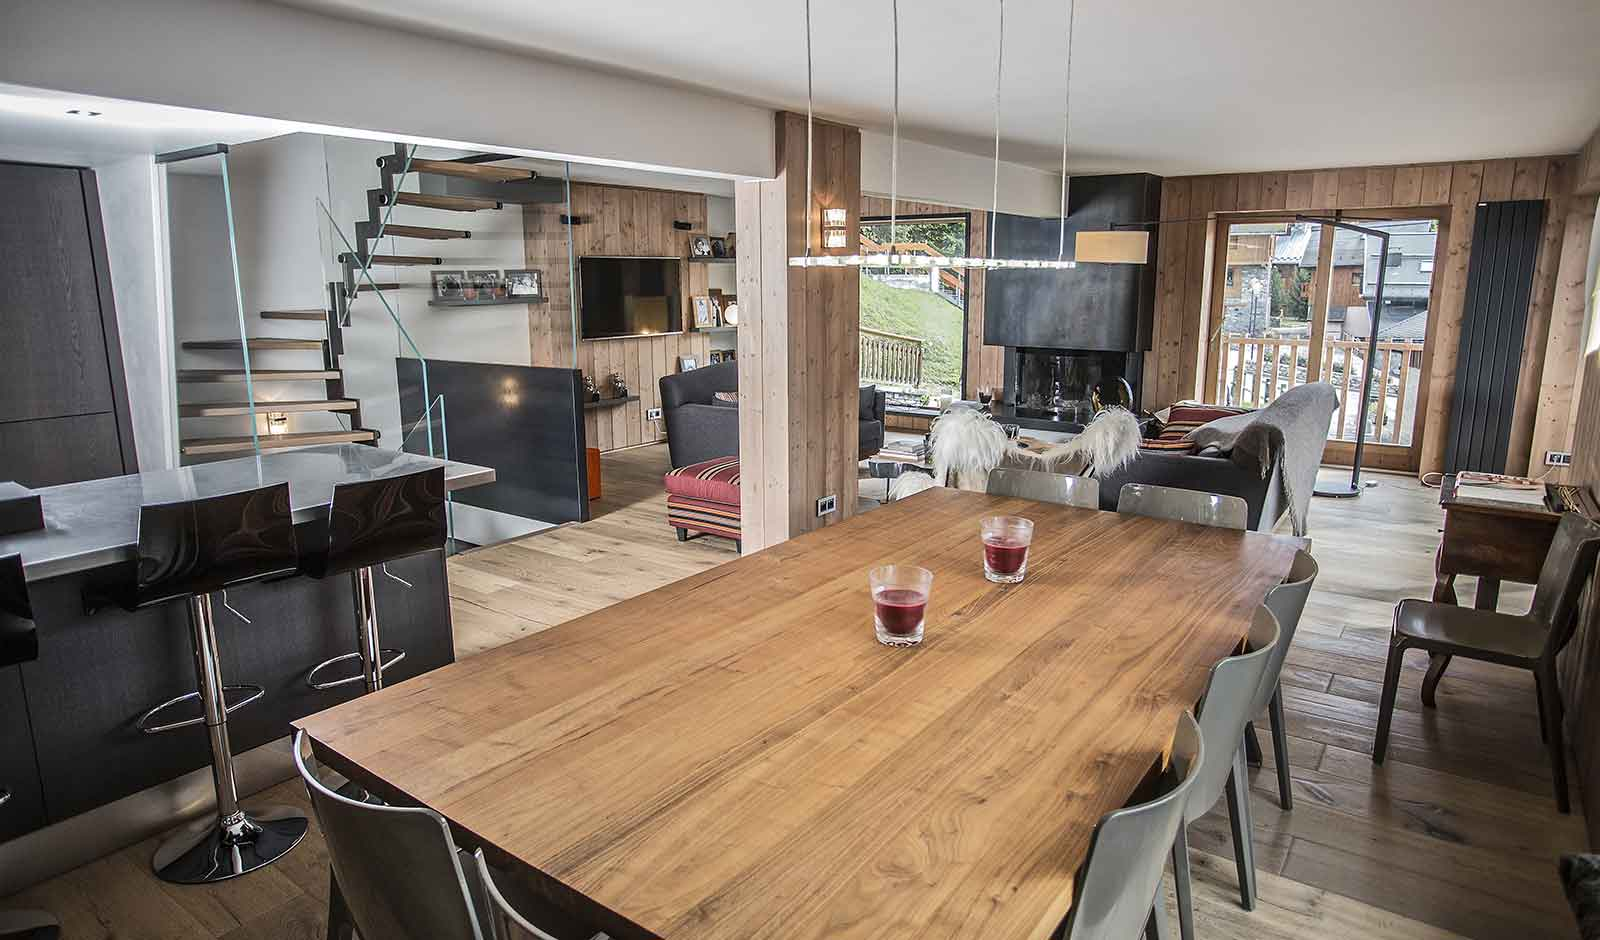 chalet-bachal-2-atelier-crea-and-co-architecte-design-project-manager-meribel-savoie